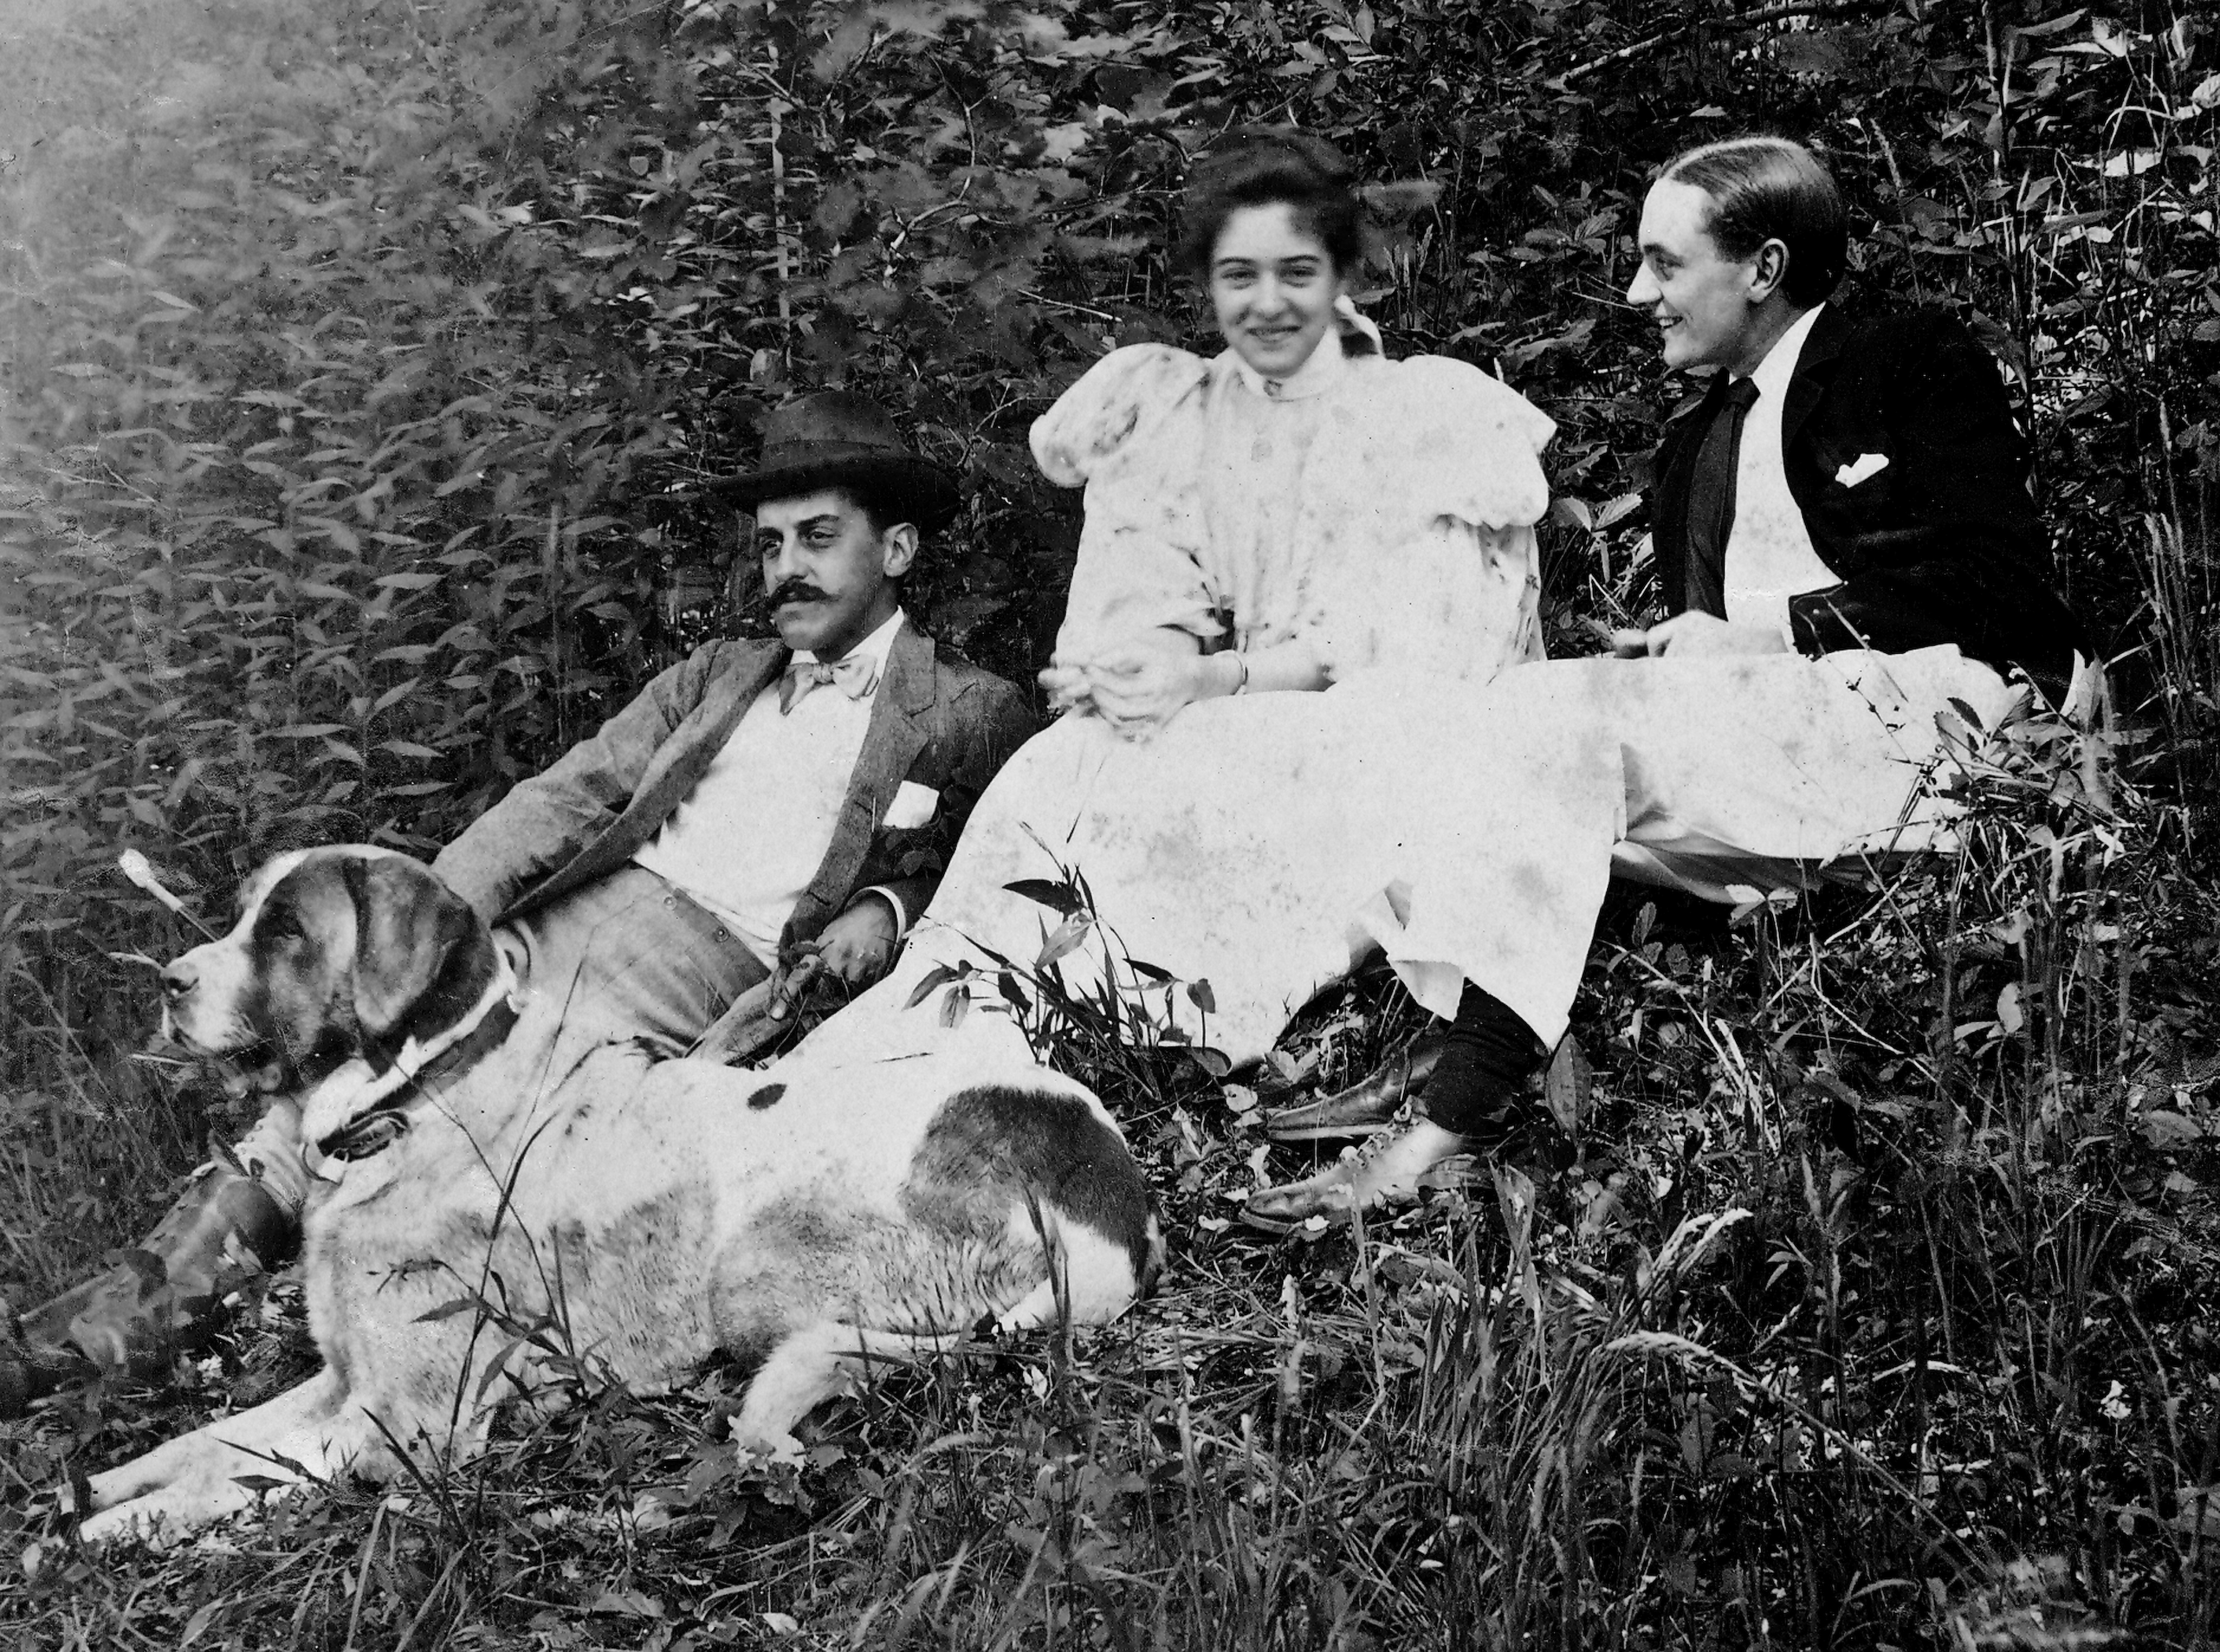 George Vanderbilt with Adele and Jay Burden and Cedric, the dog. June 1896.